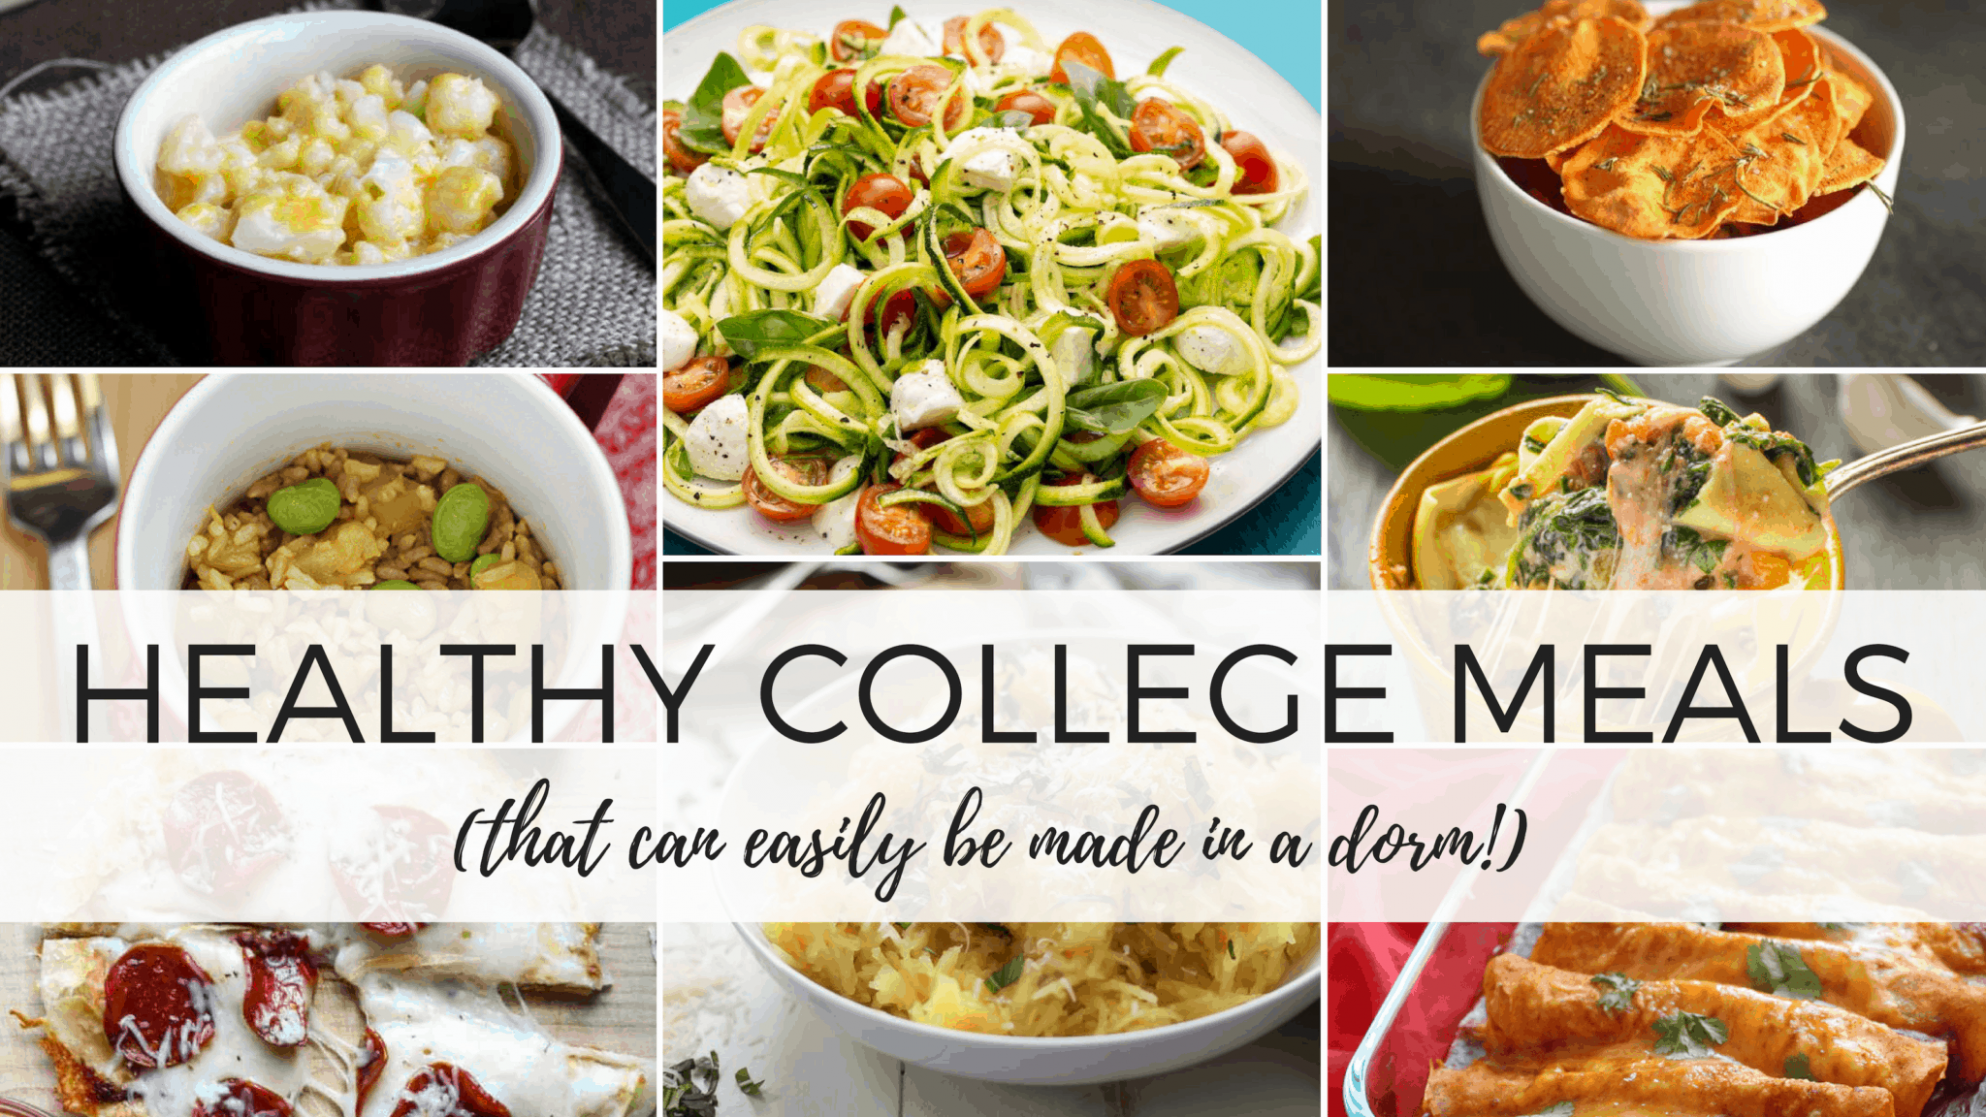 8 Insanely Healthy College Meals You Can Make In A Dorm - By ..